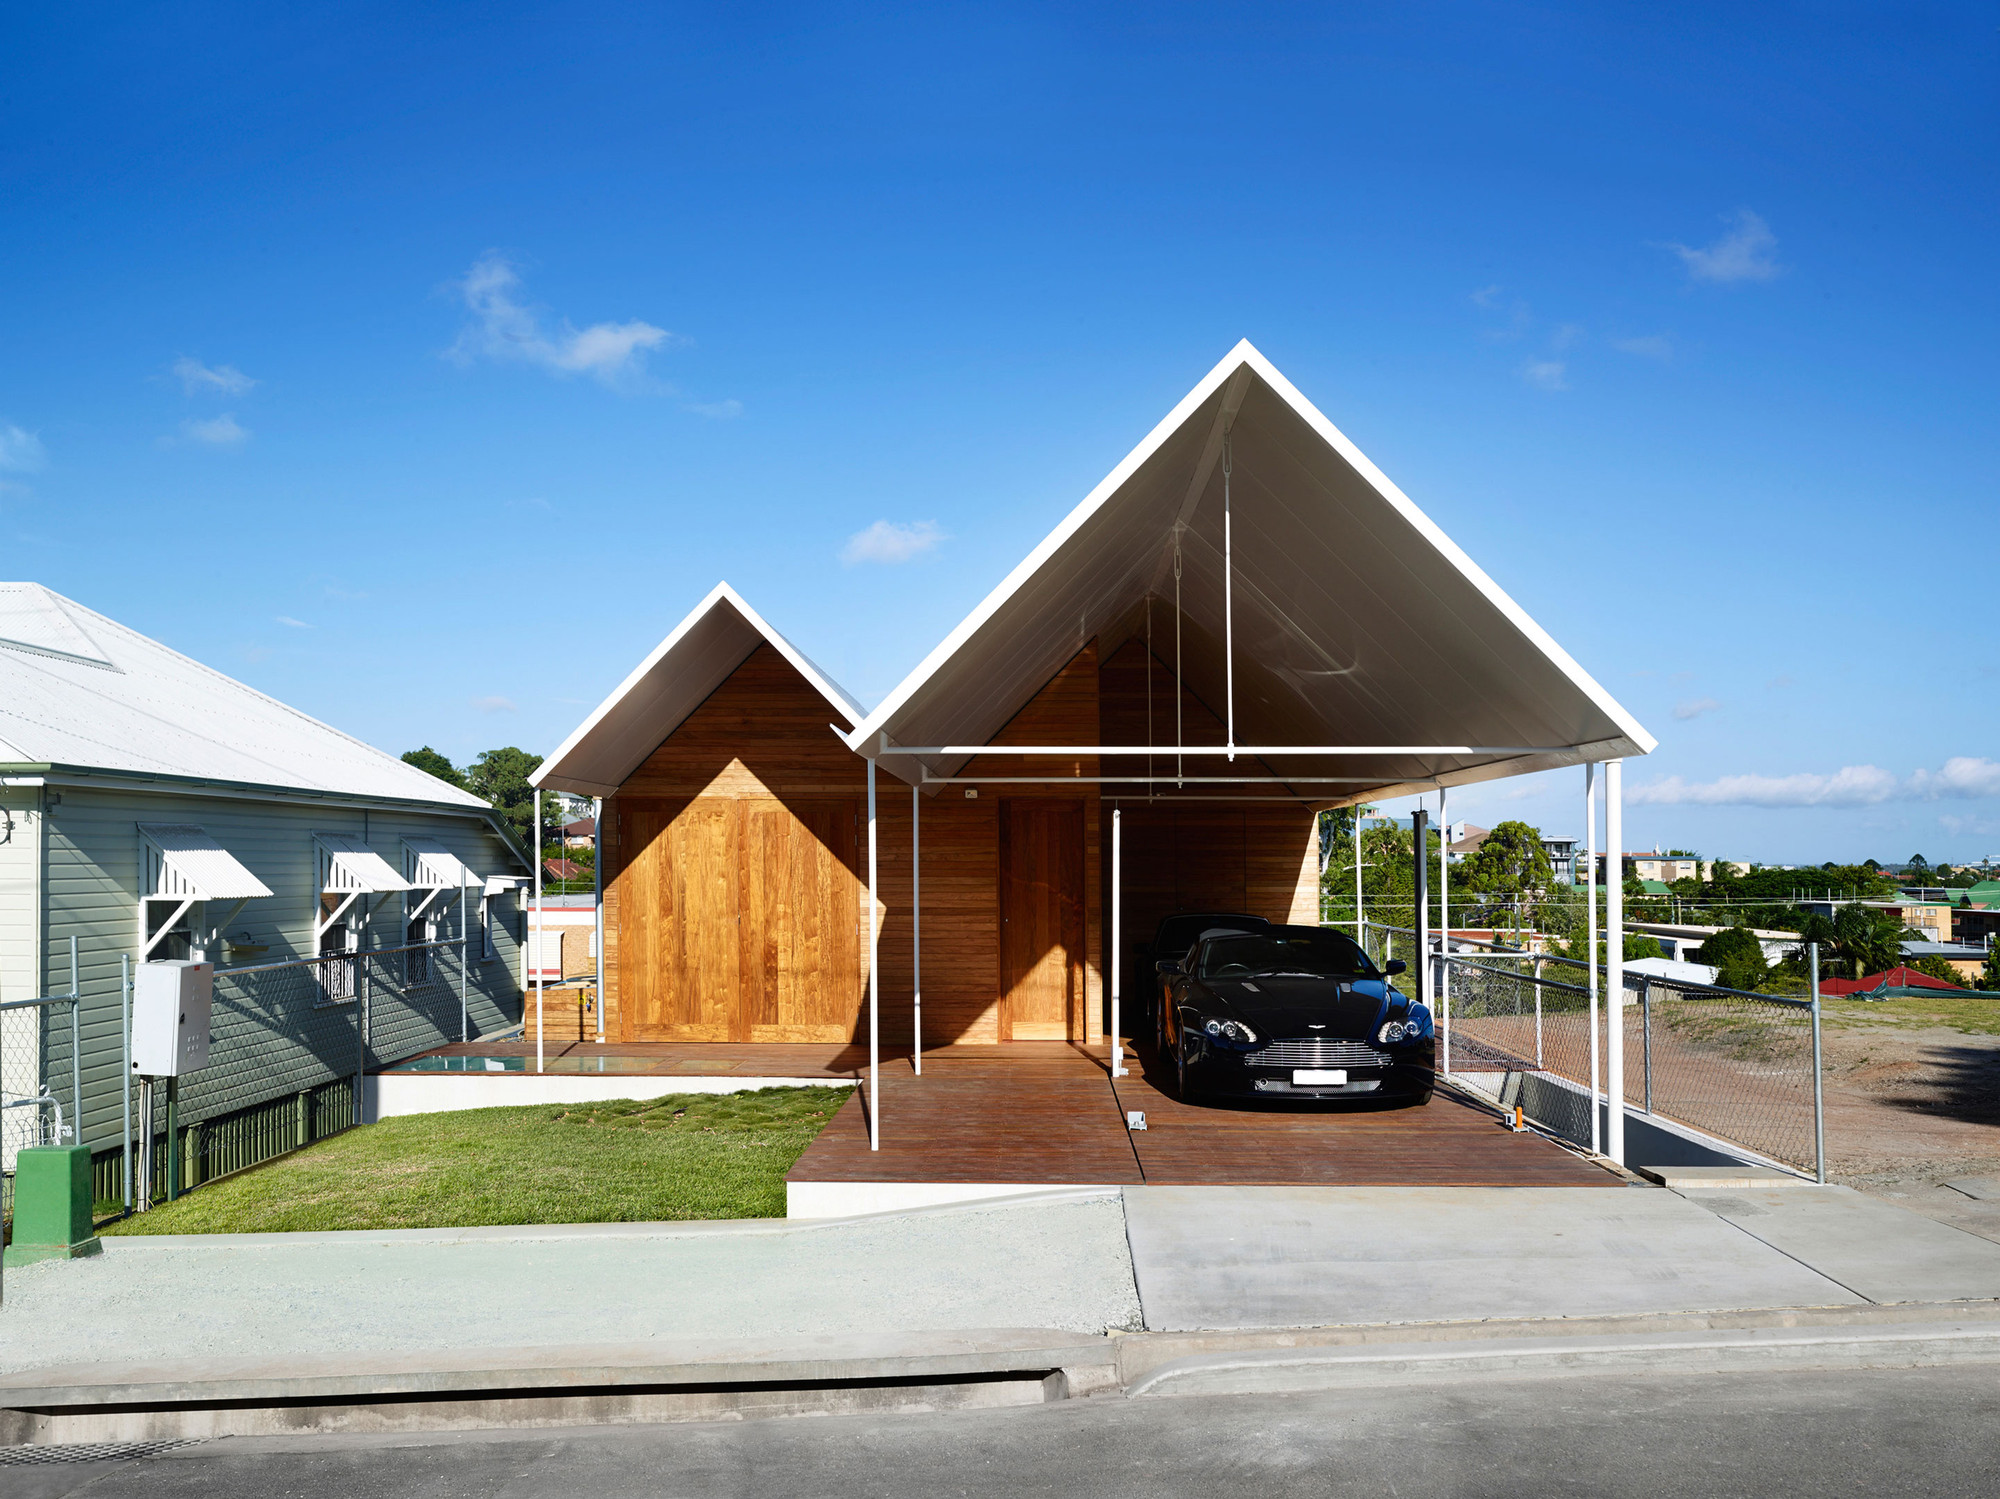 Christian Street House / James Russell Architect, © Toby Scott